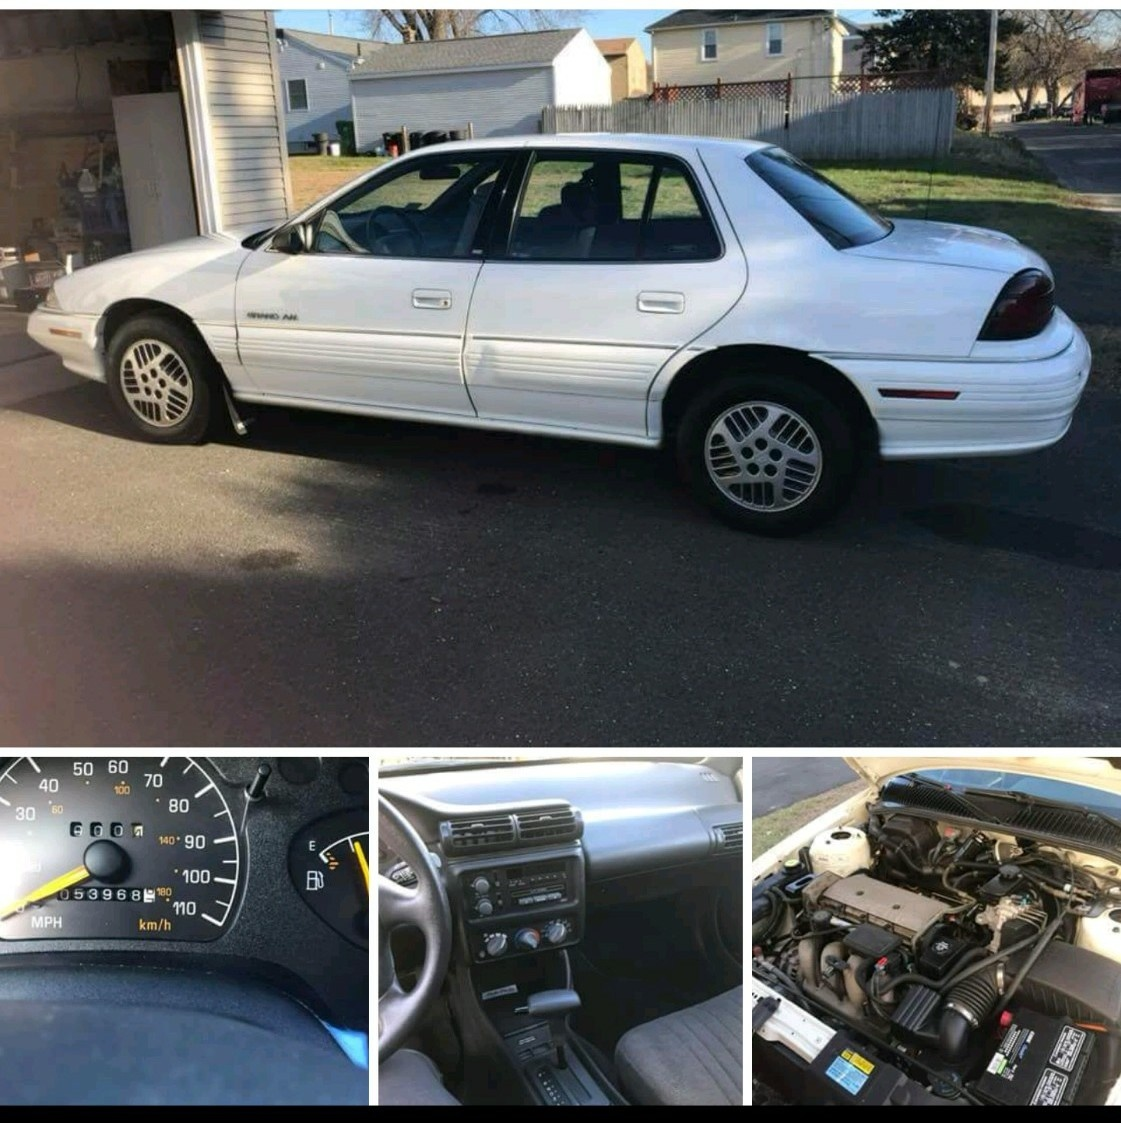 Pontiac Grand Am Questions Car Radio Change Cargurus 2005 Wiring Harnessstereoan Aftermarket Harness I Want To Switch Out The Old 1994 With A New Maybe Pioneer One How Do Know What Buy Is There Specific Sizing Have